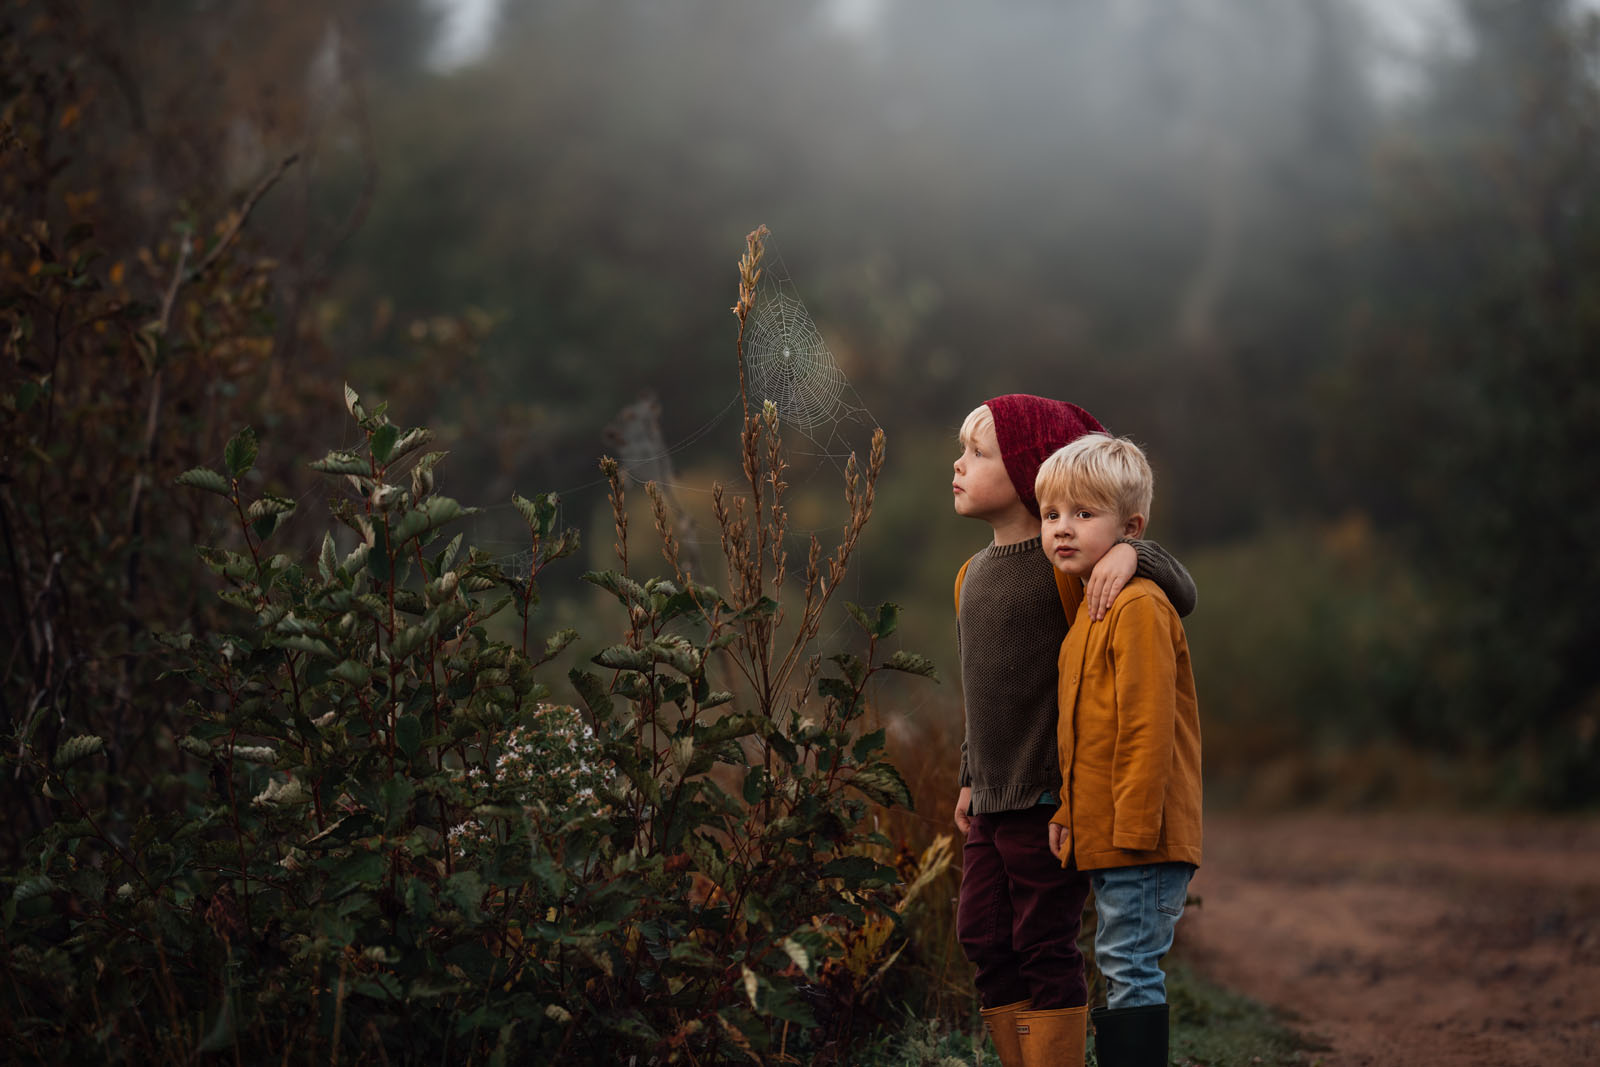 megloeks_13 small boys looking at spider web among leaves in fog in autumn fall activities by meg loeks